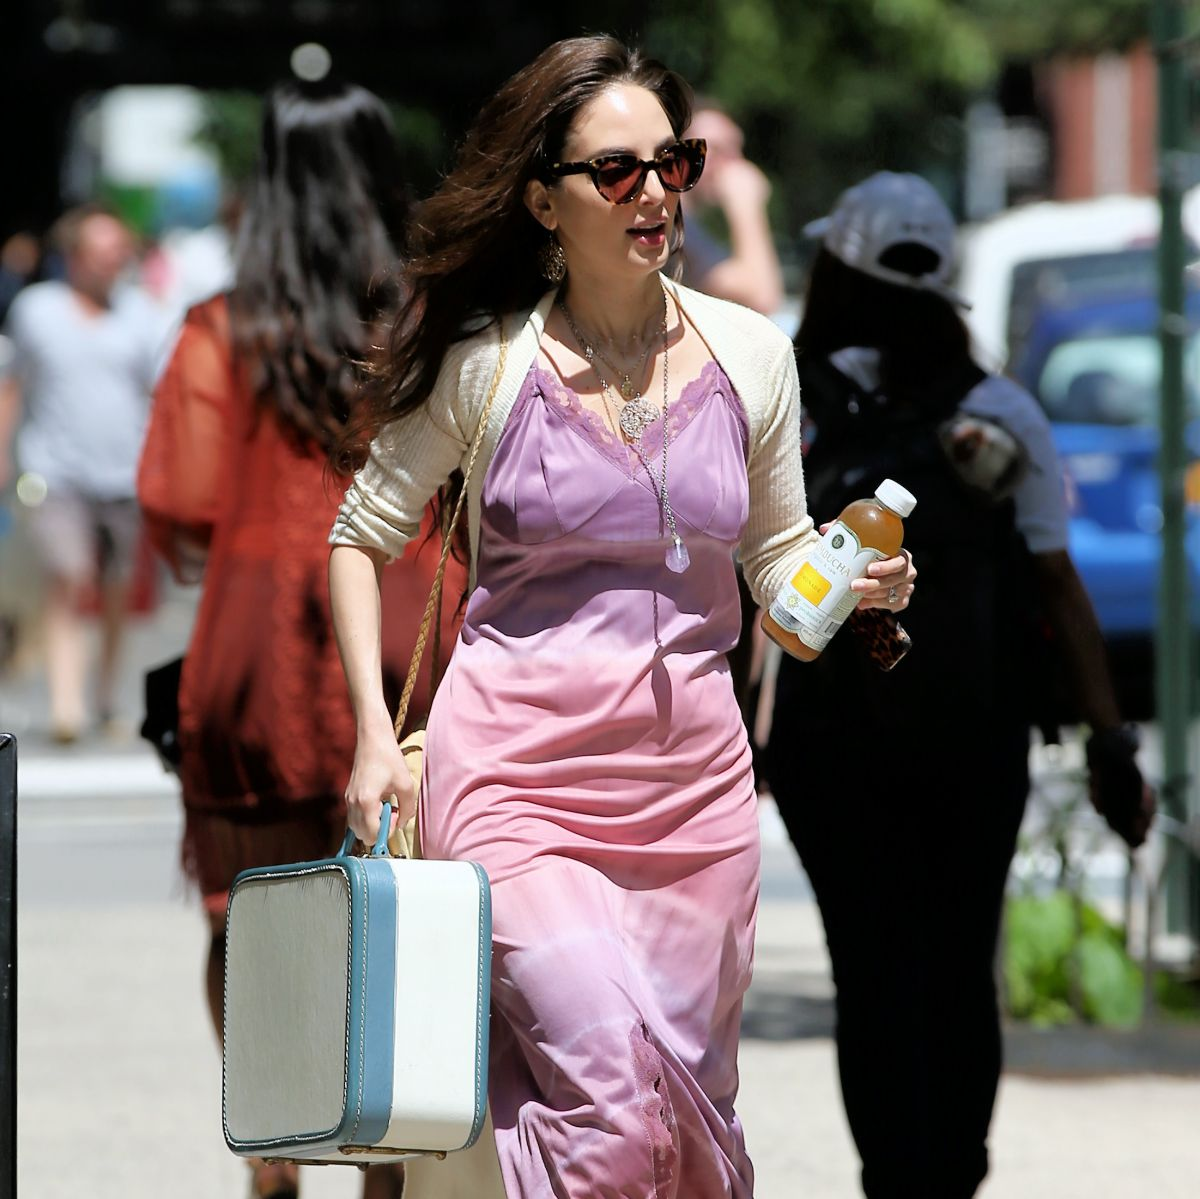 Alexa Ray Joel Wearing A Pink Slip Dress, Carries A Retro